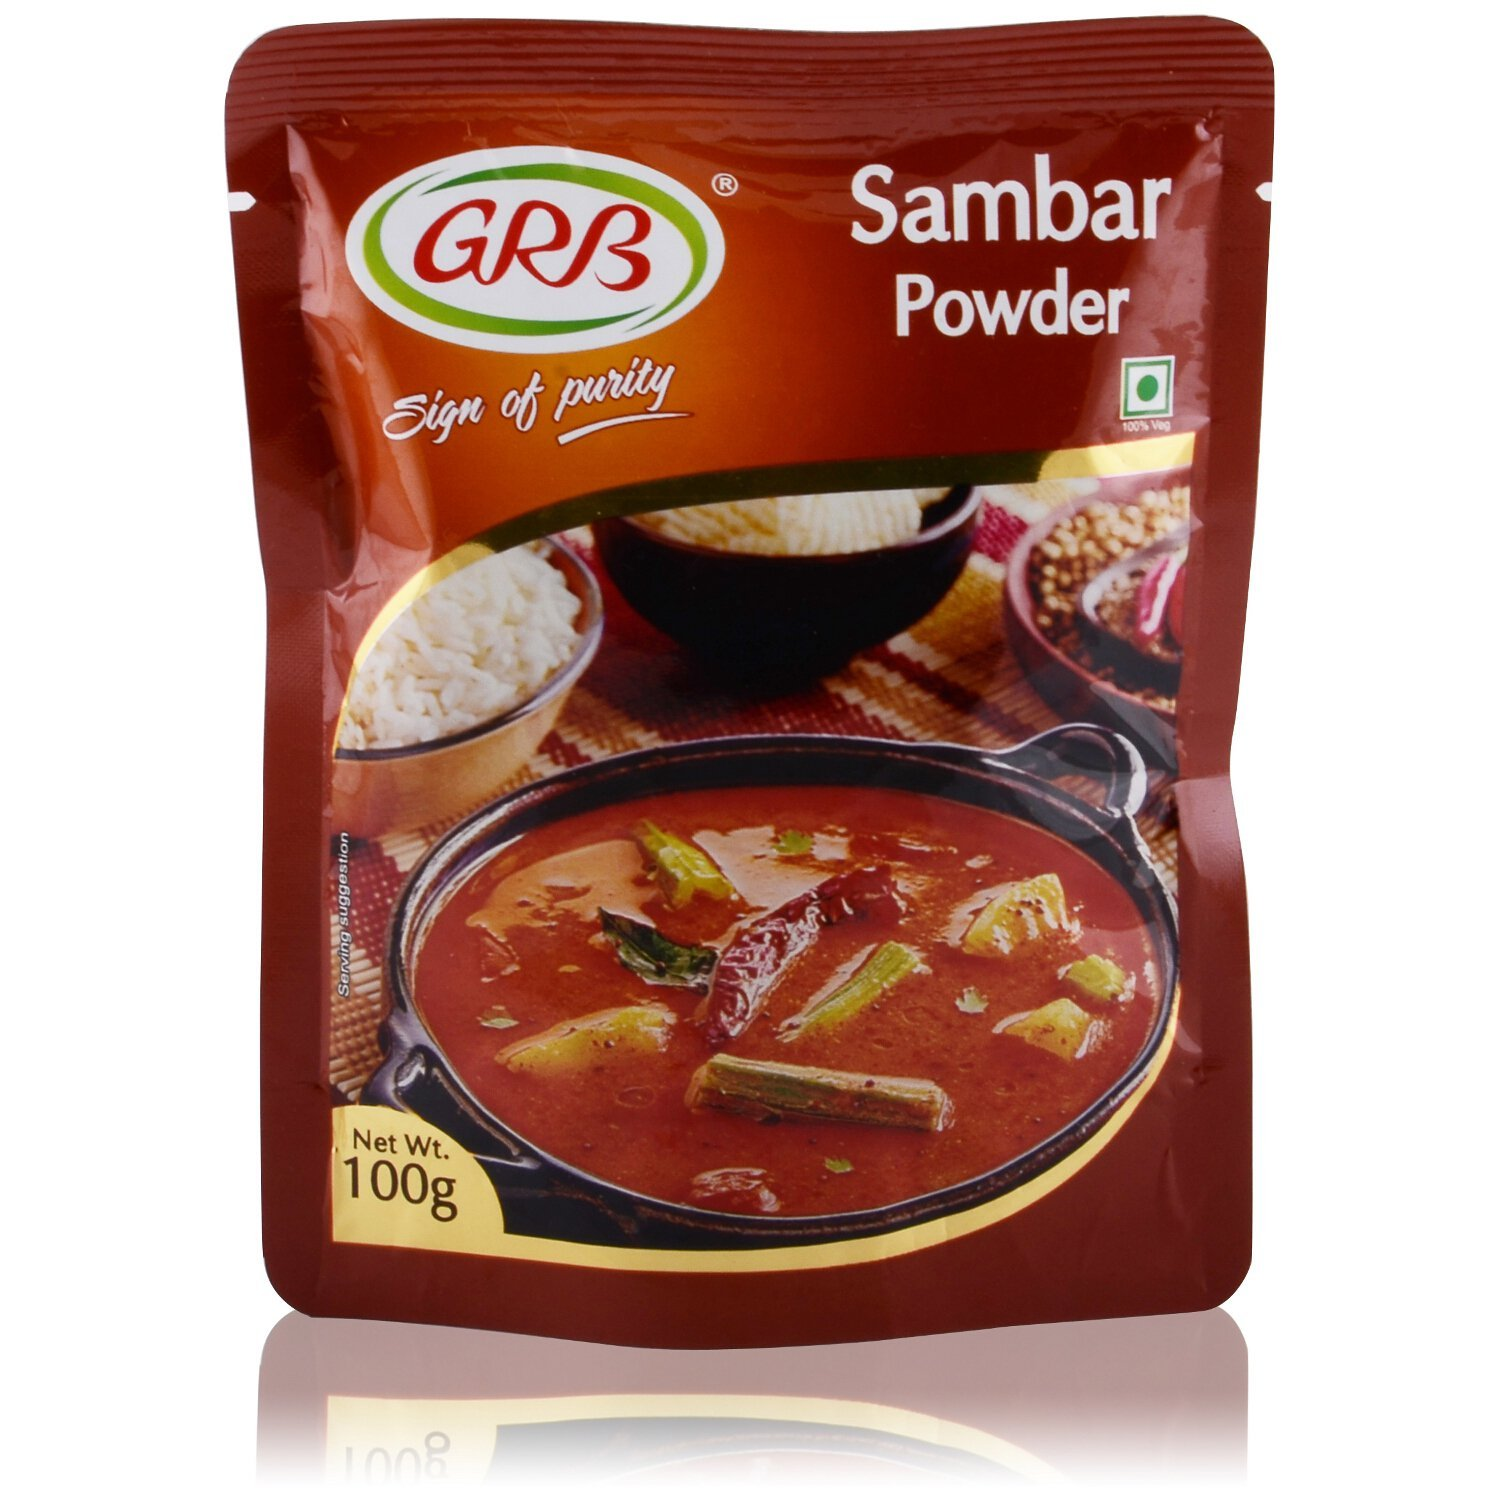 Grb Powder Sambar